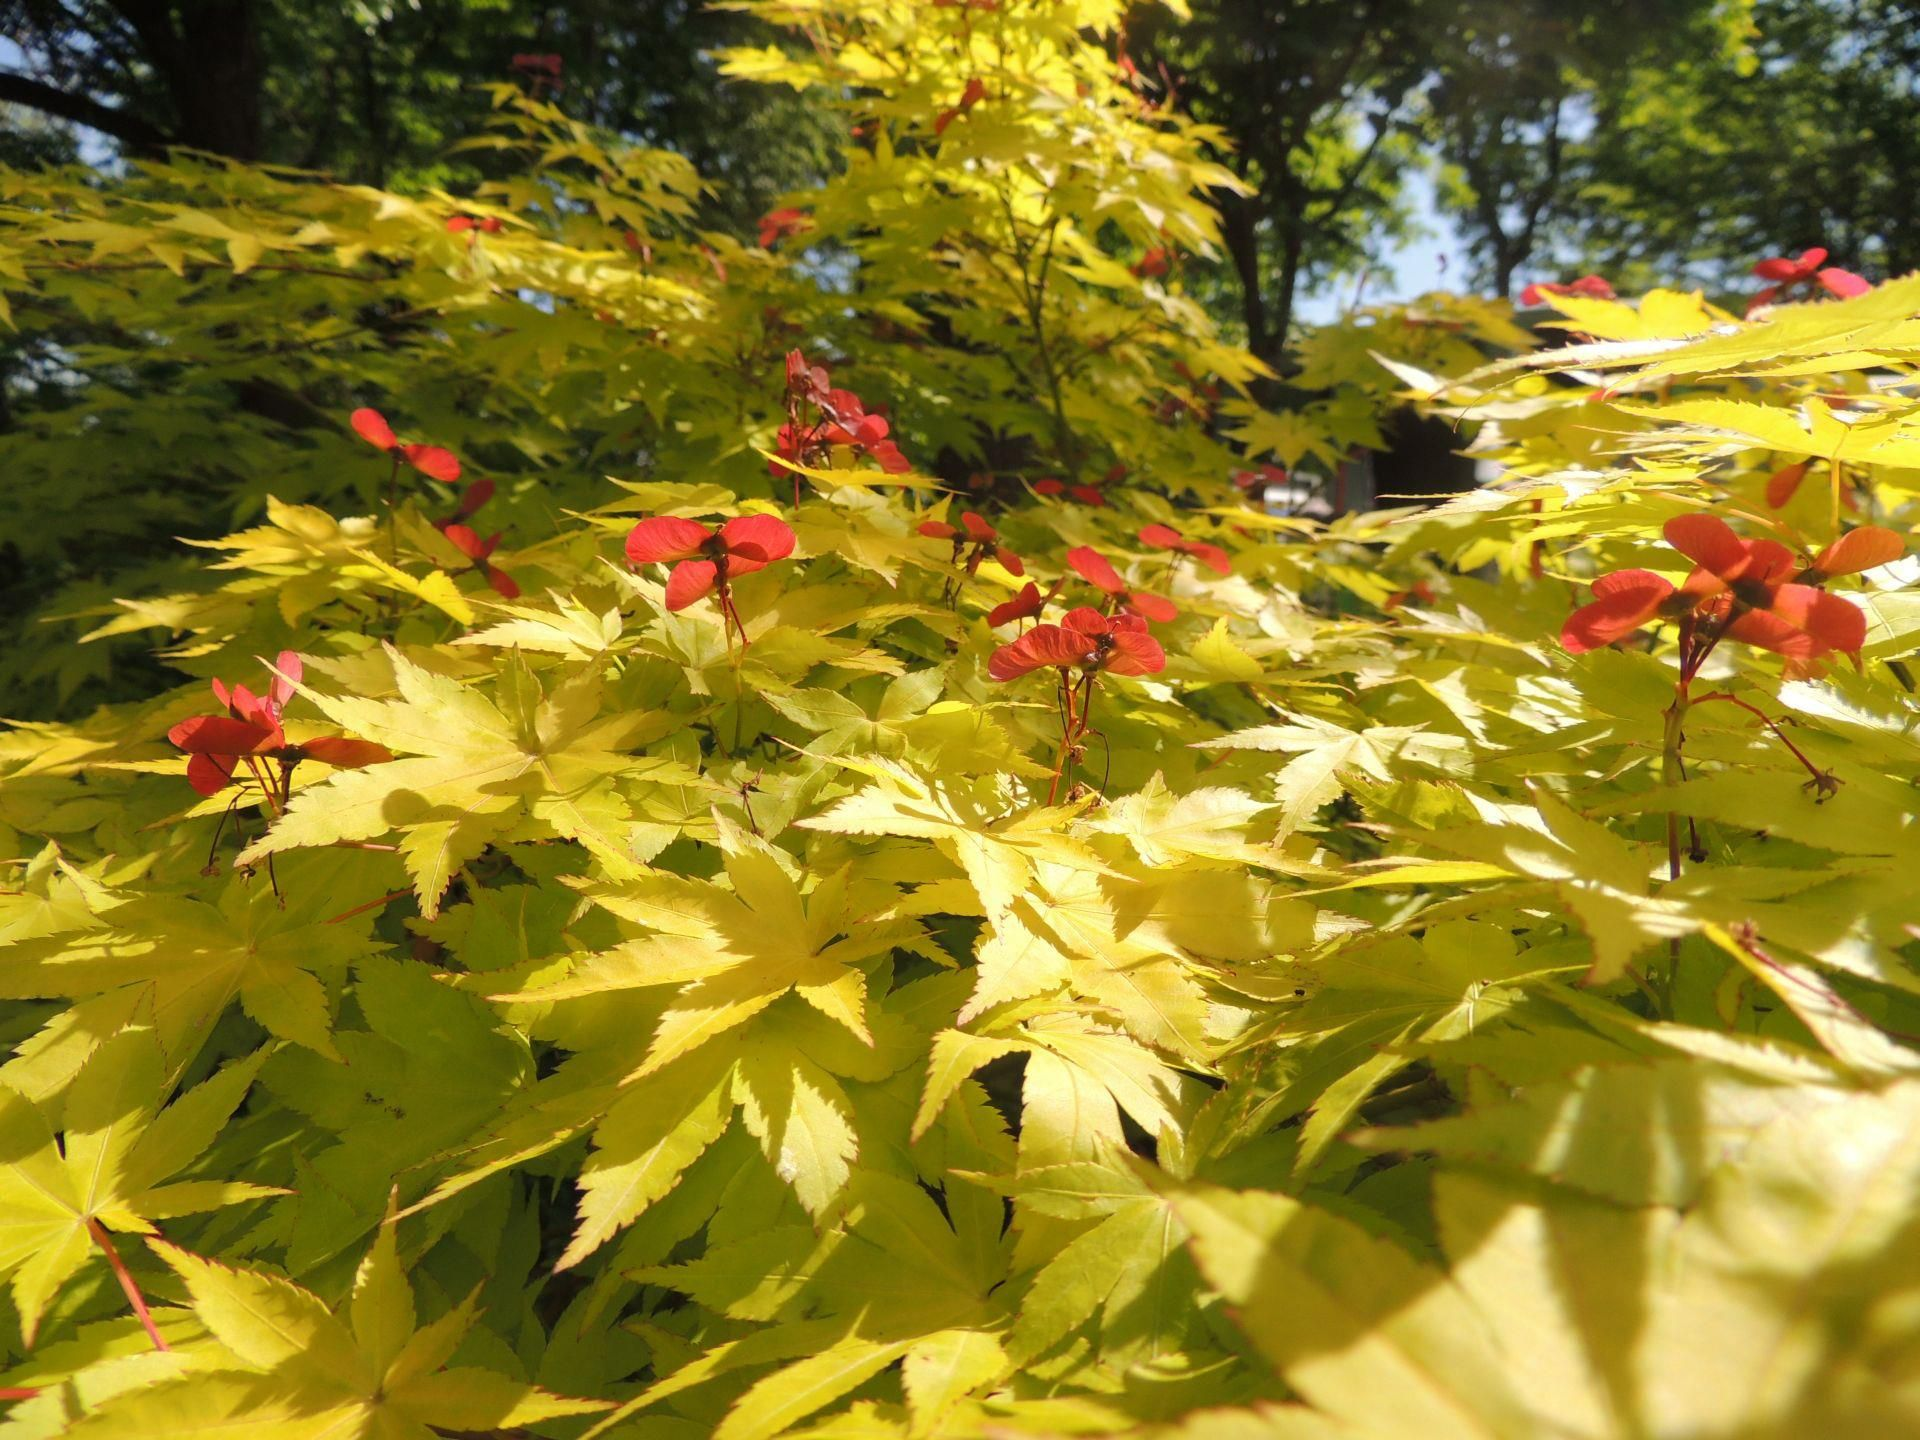 Acer Palmatum Summer Gold With Fab Yellow New Growth And Red Seed